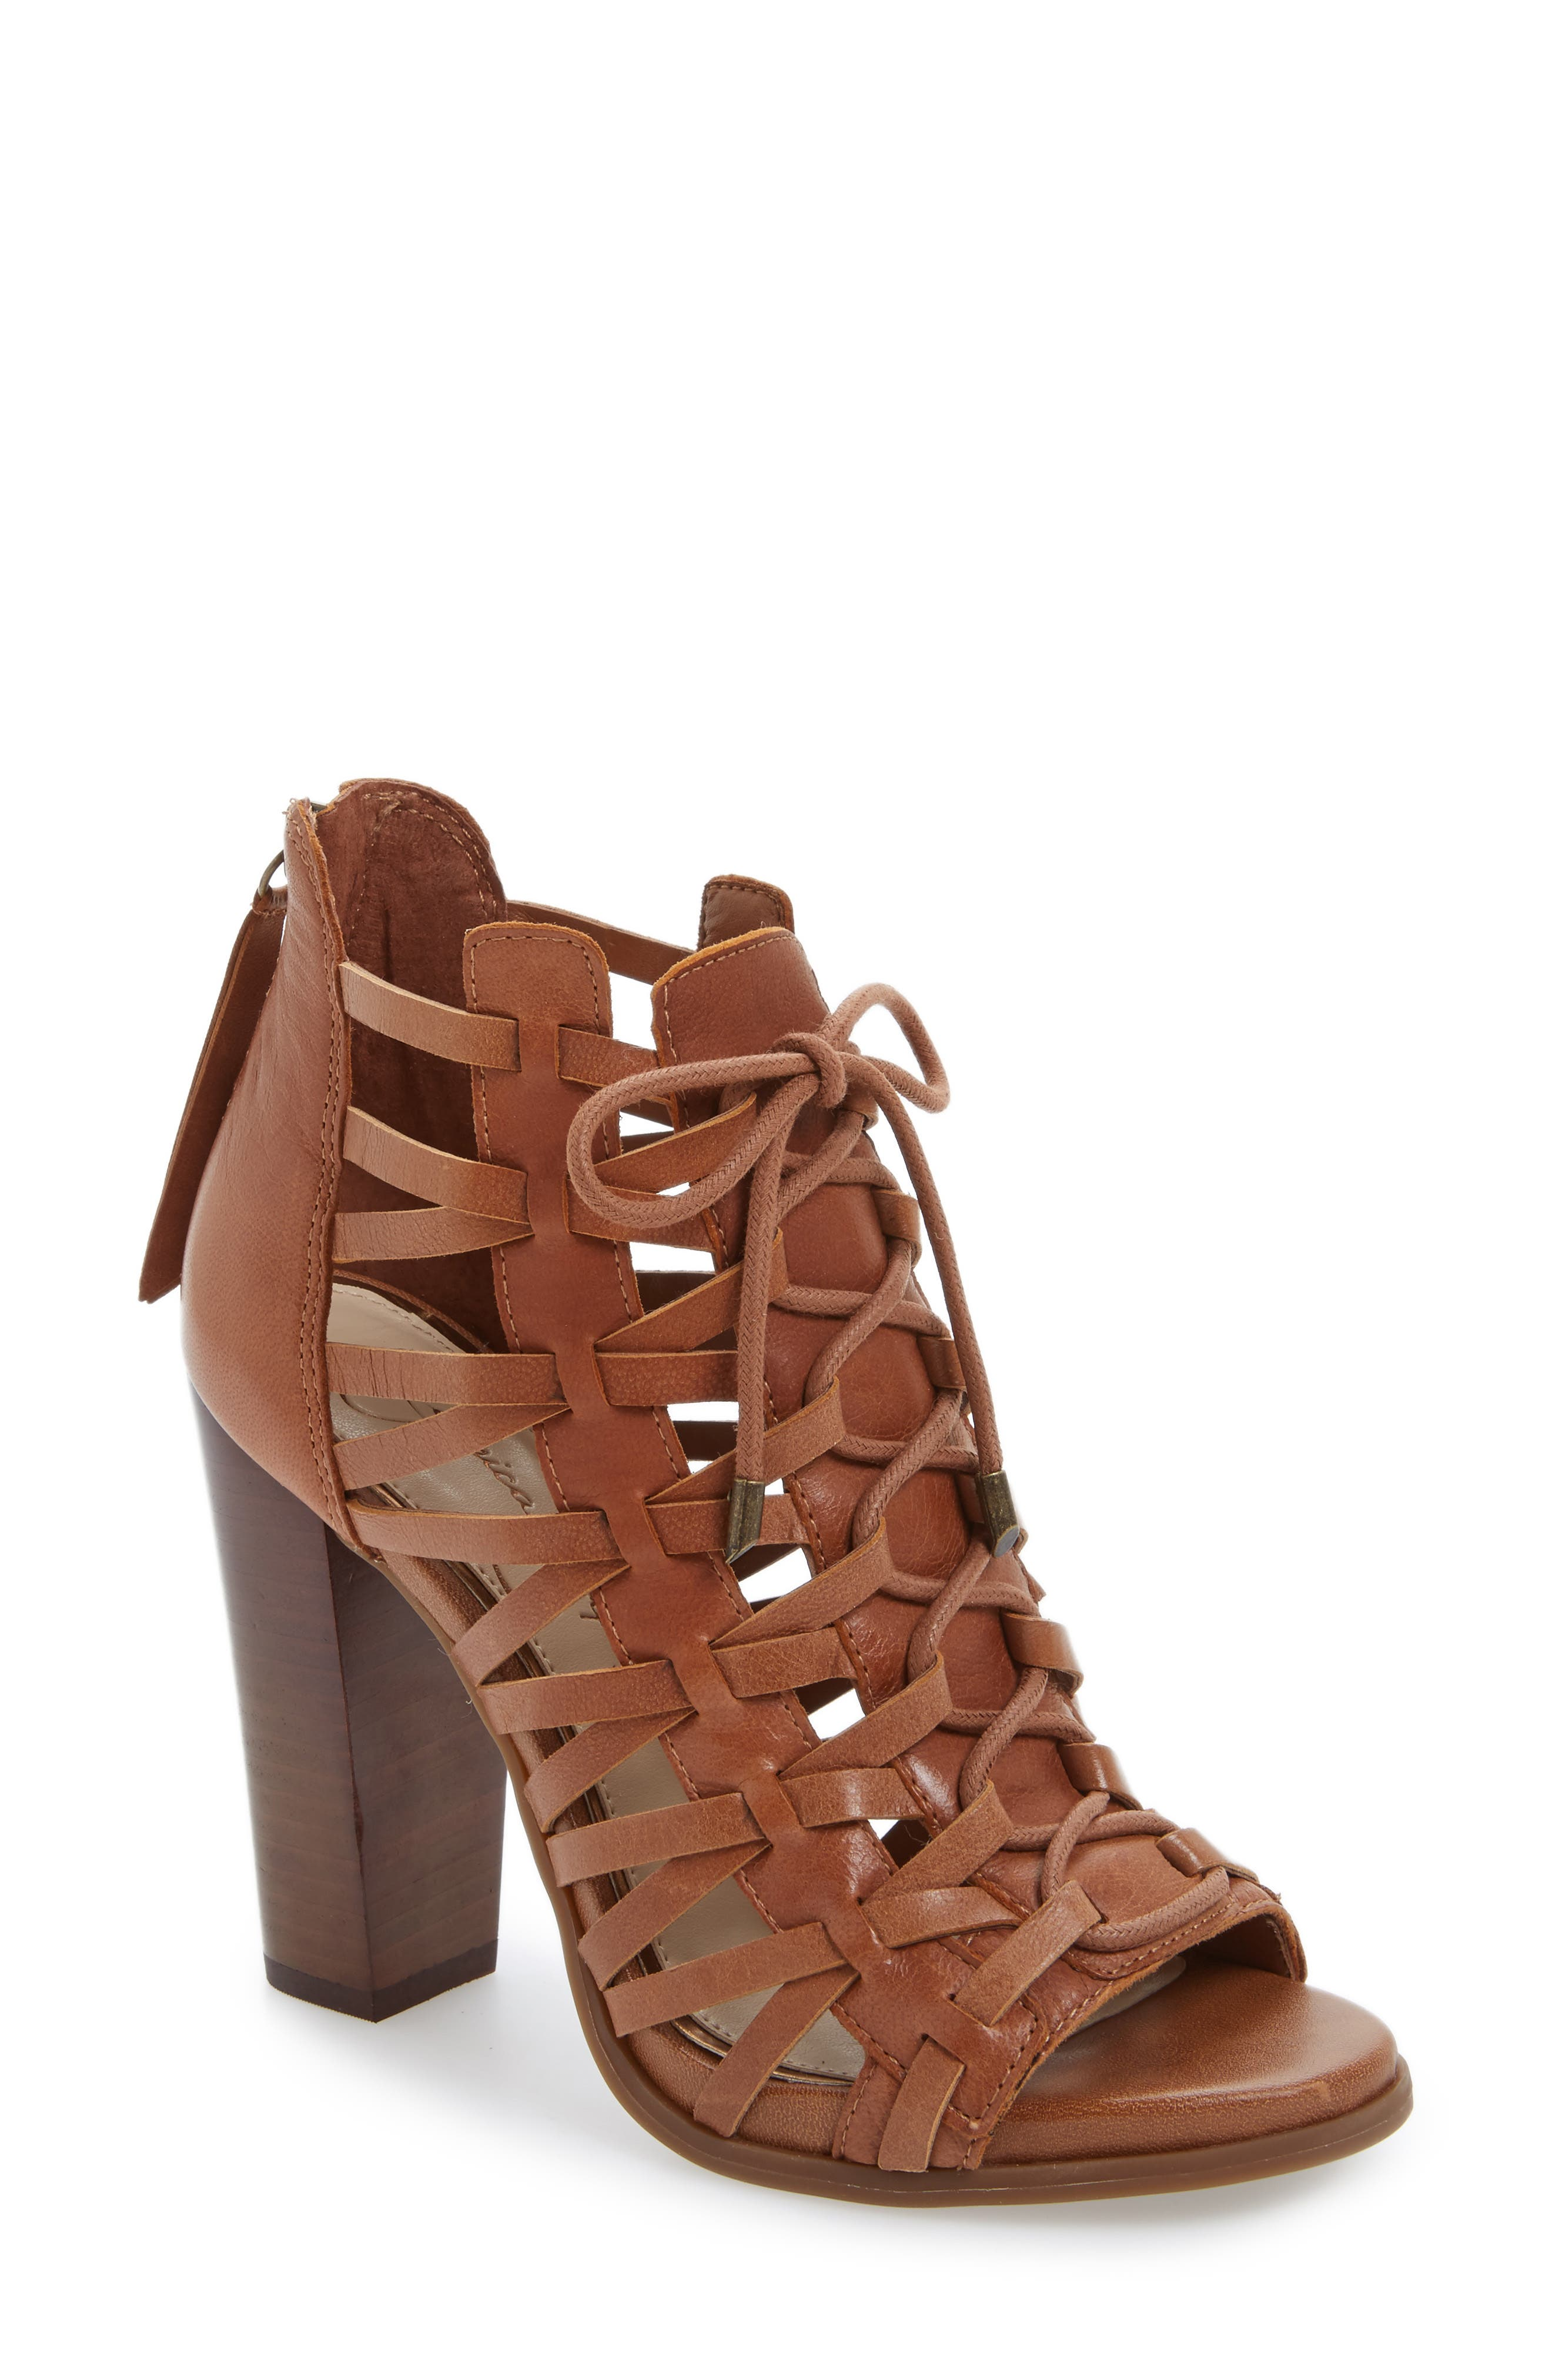 Main Image - Jessica Simpson Riana Lace-Up Bootie (Women)